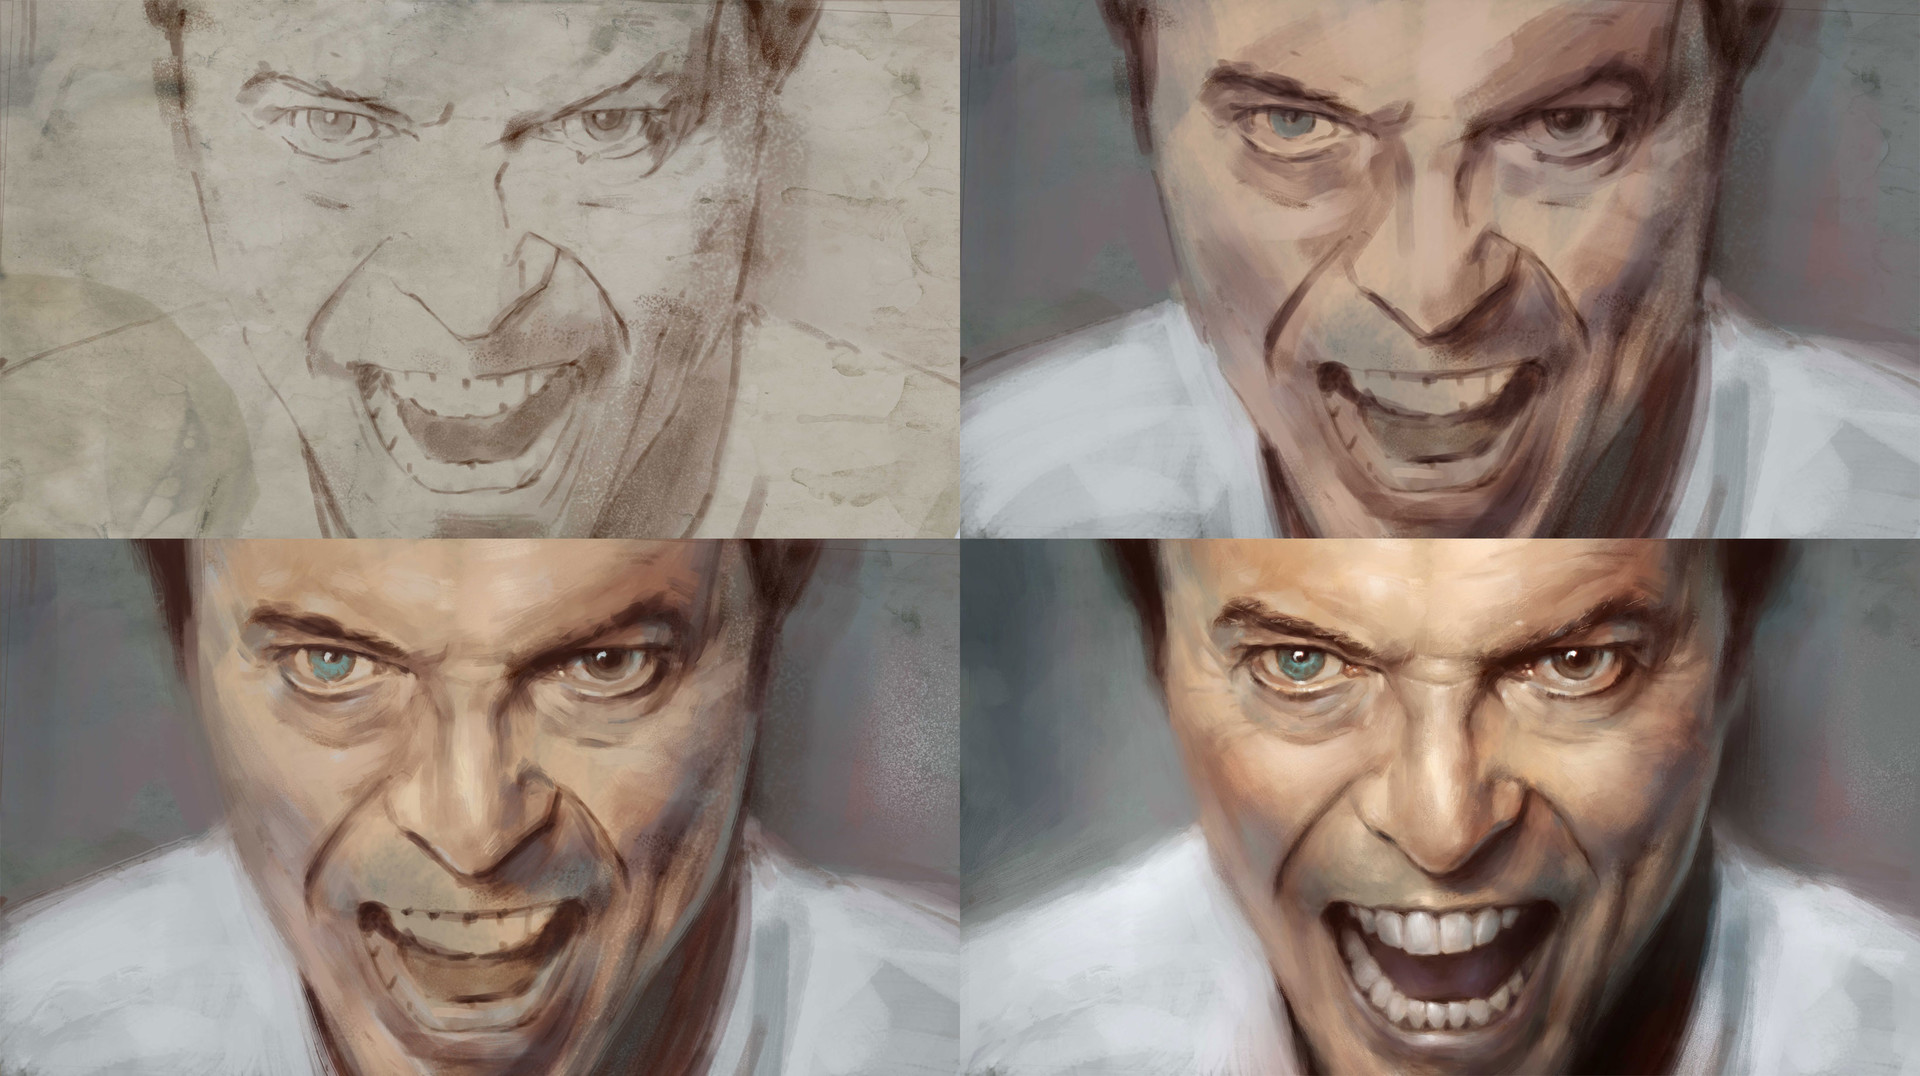 Pascal quidault david bowie wip